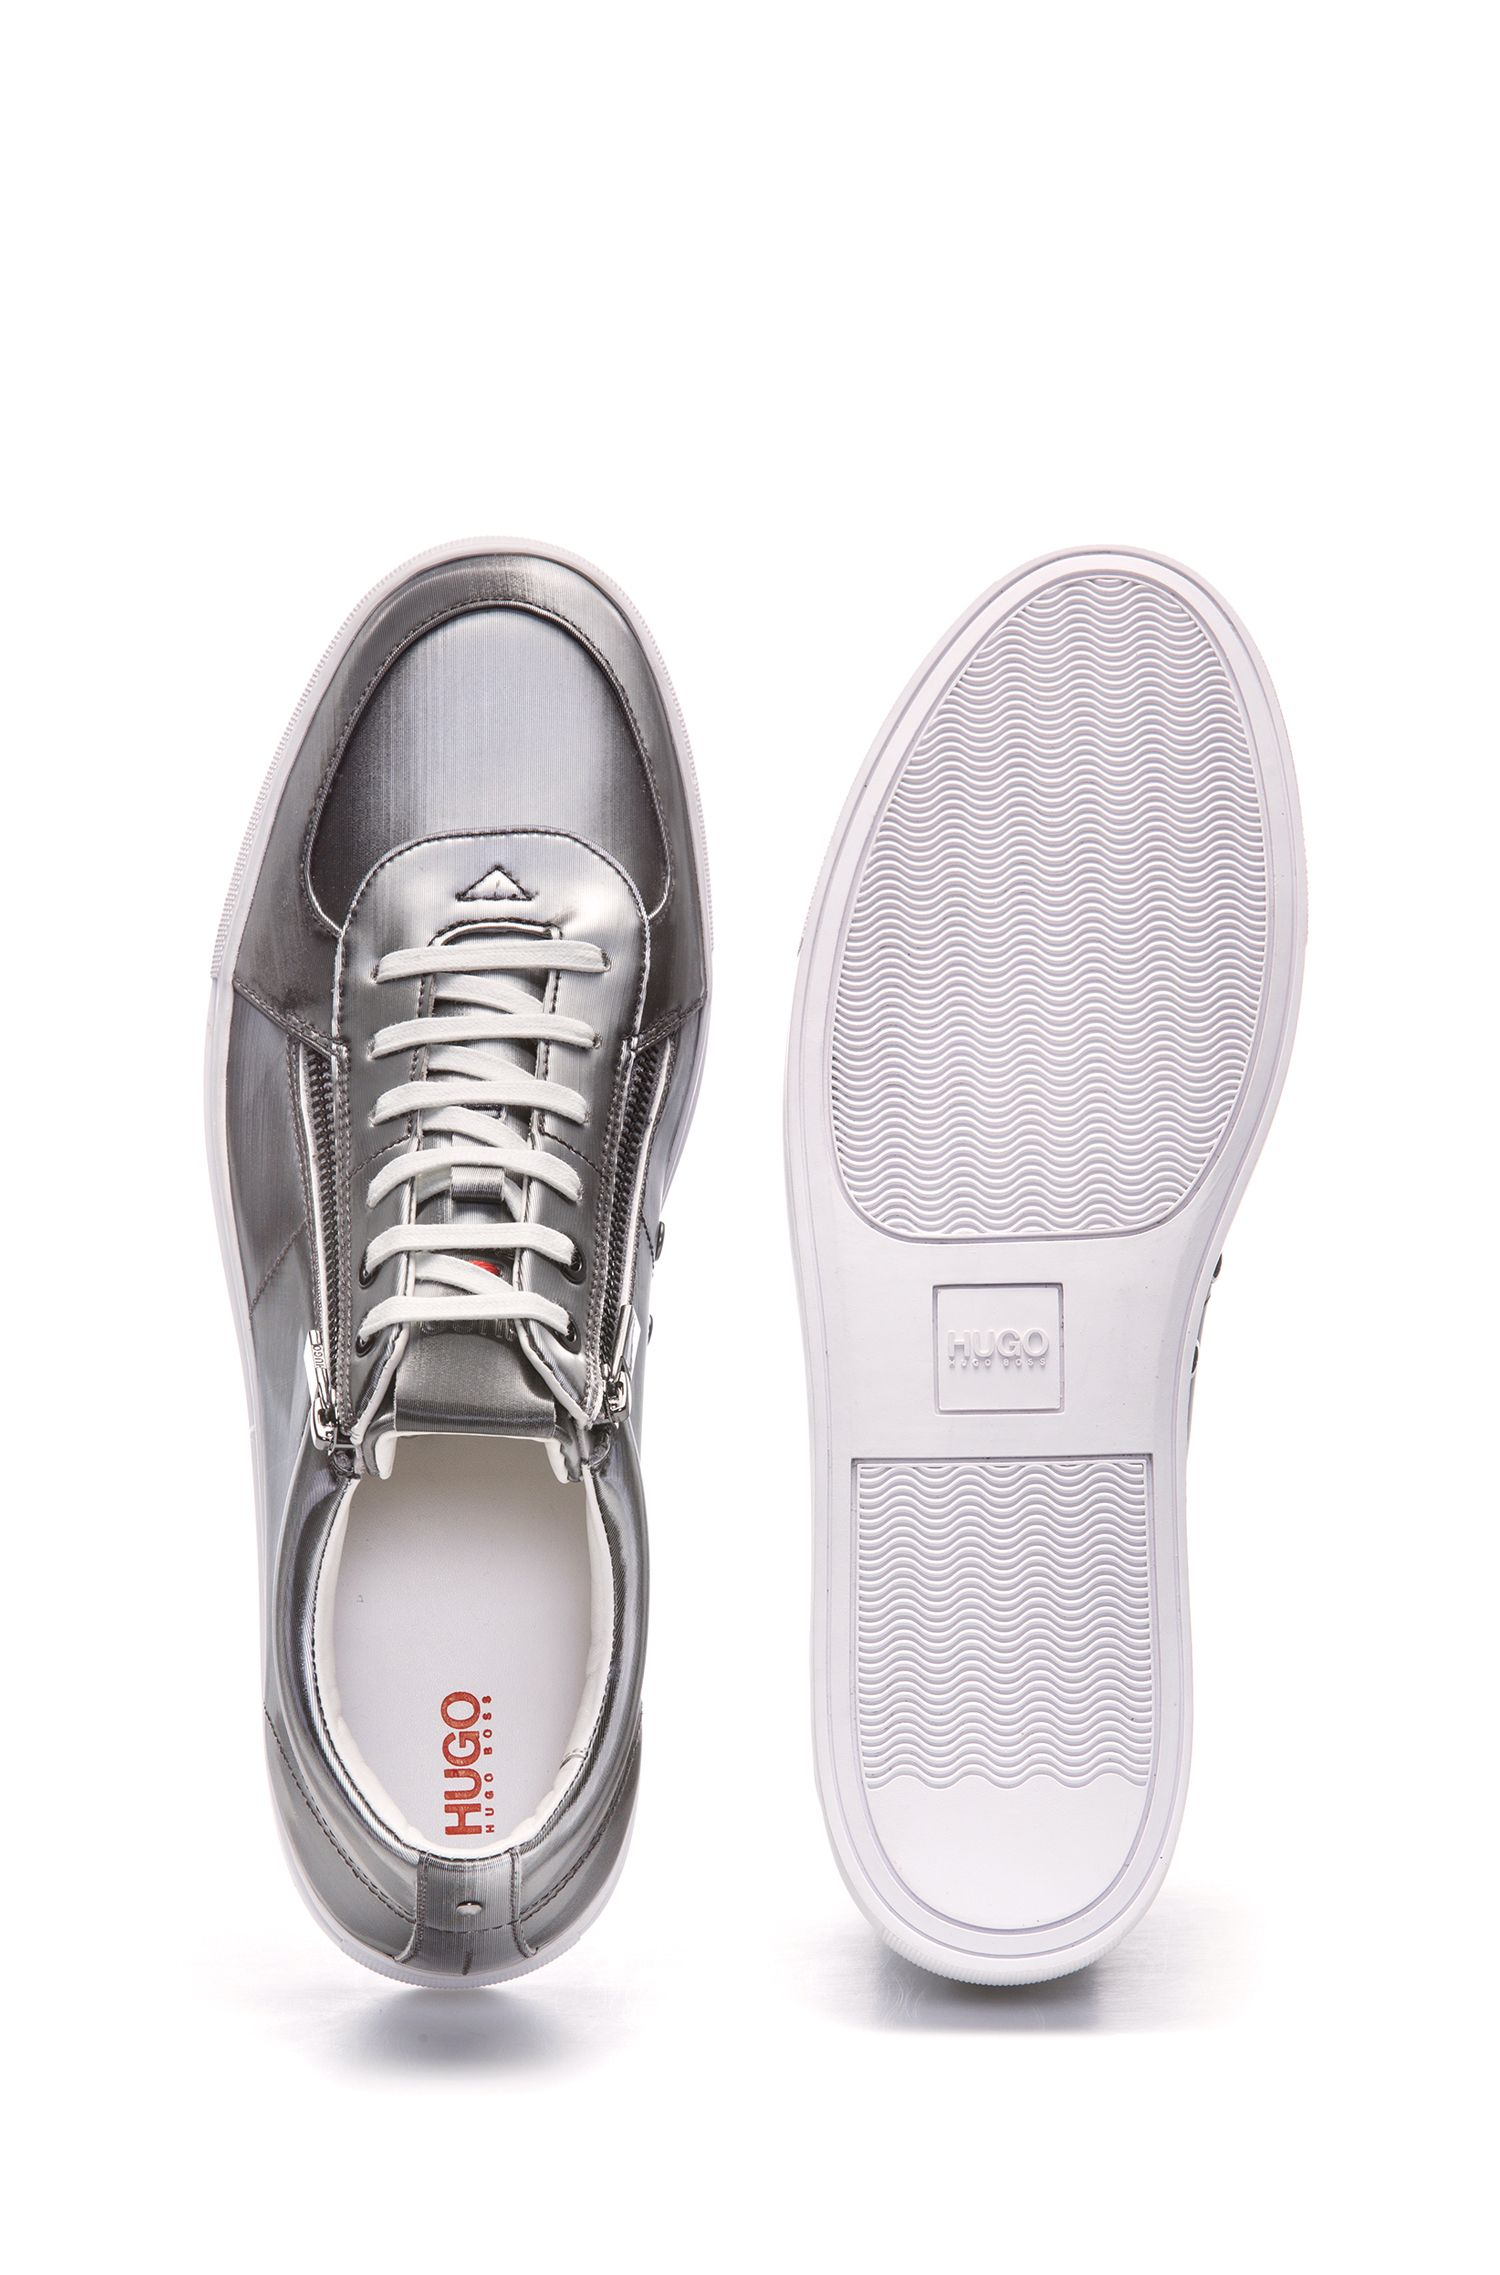 Metallic sneakers with double-zipper detail, Silver